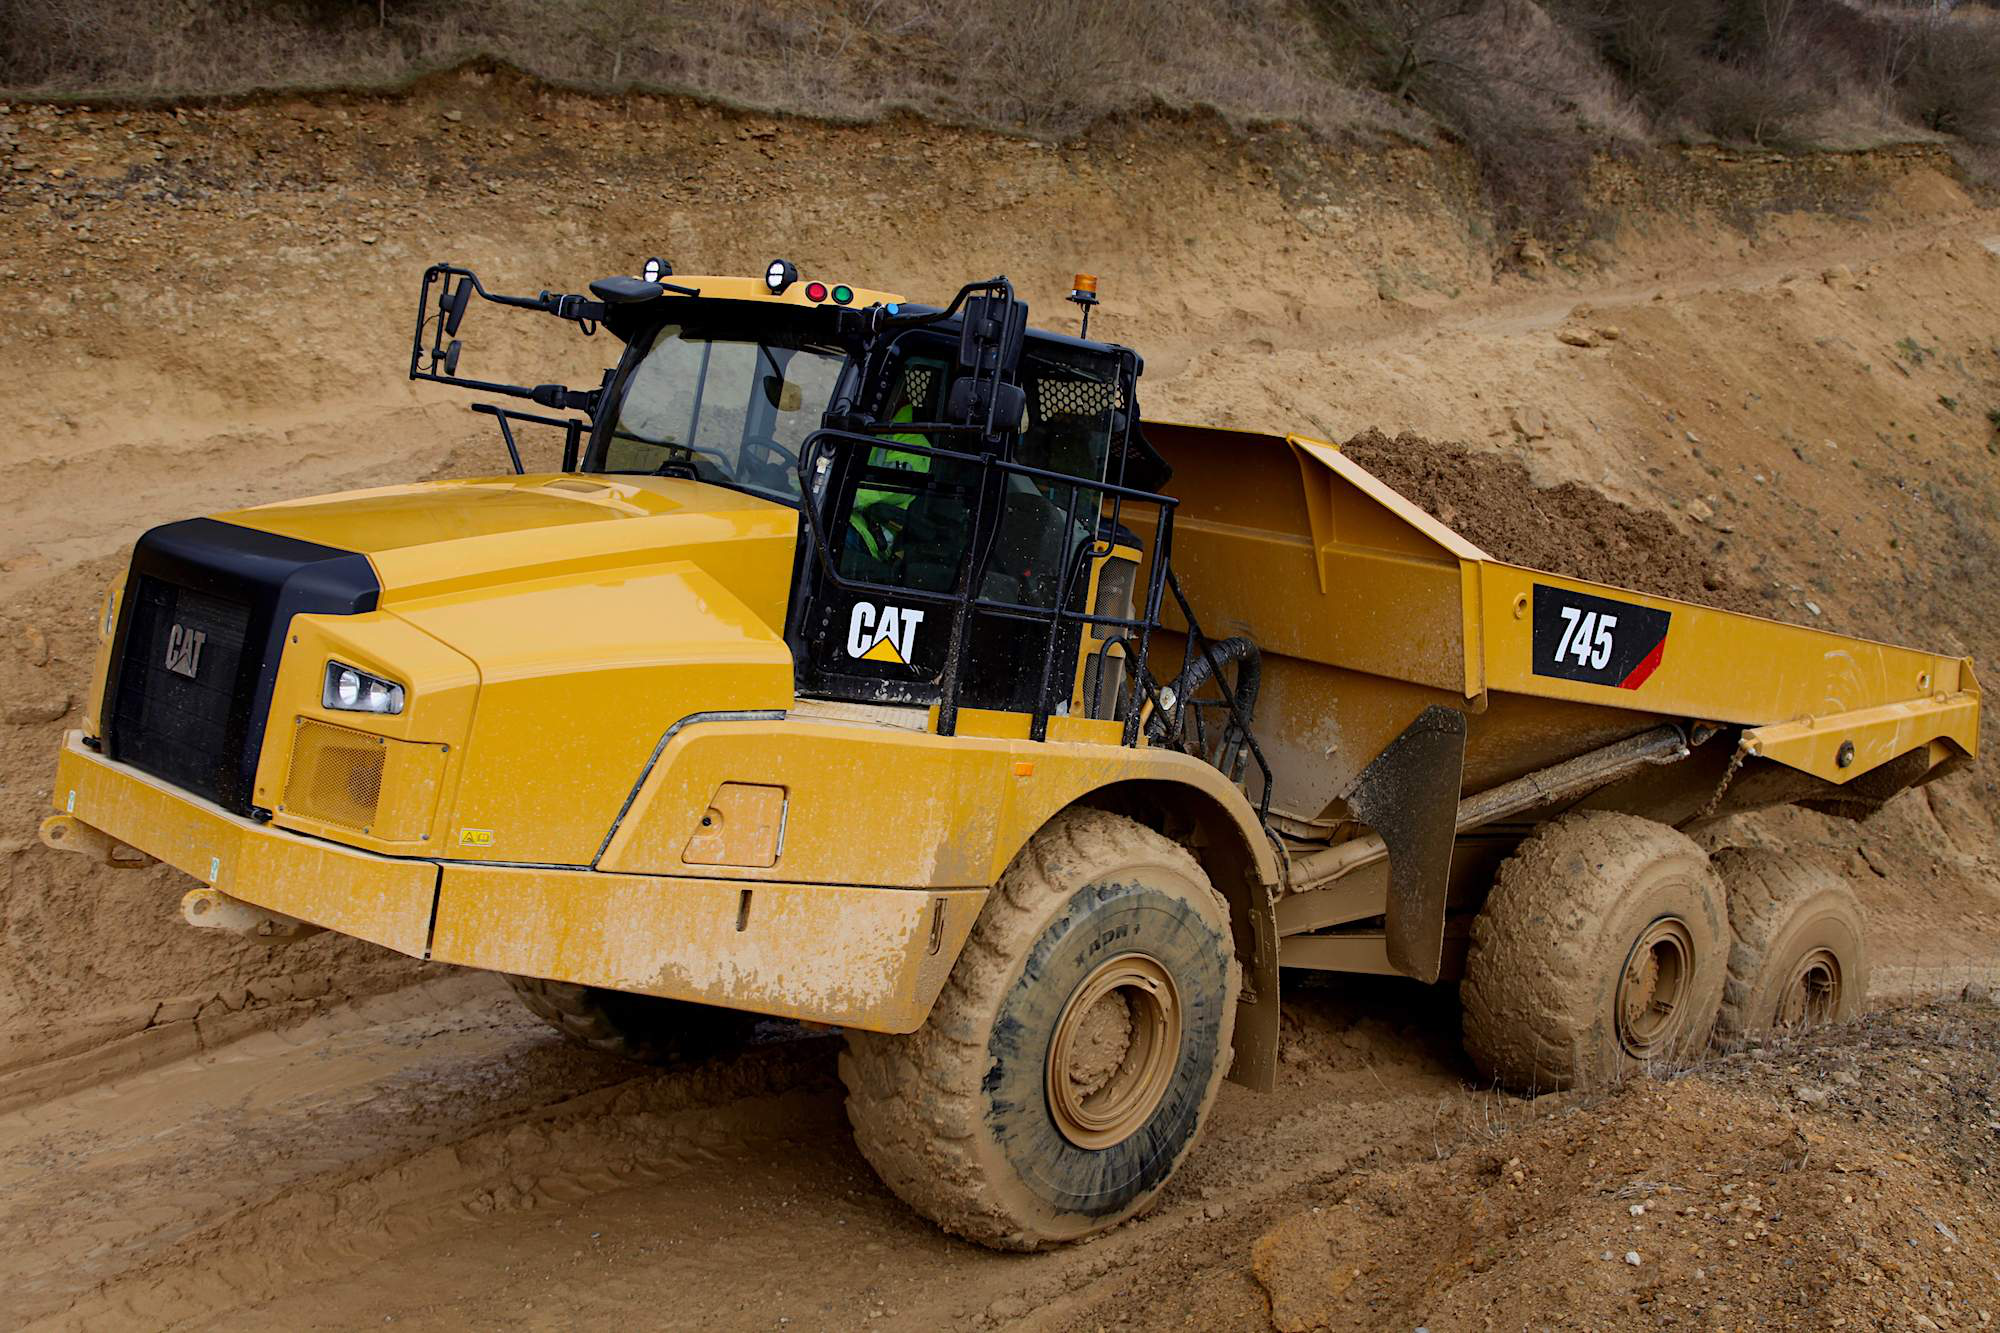 Cat unveils redesigned 745 articulated truck with larger cab, stability assist to counter overturns